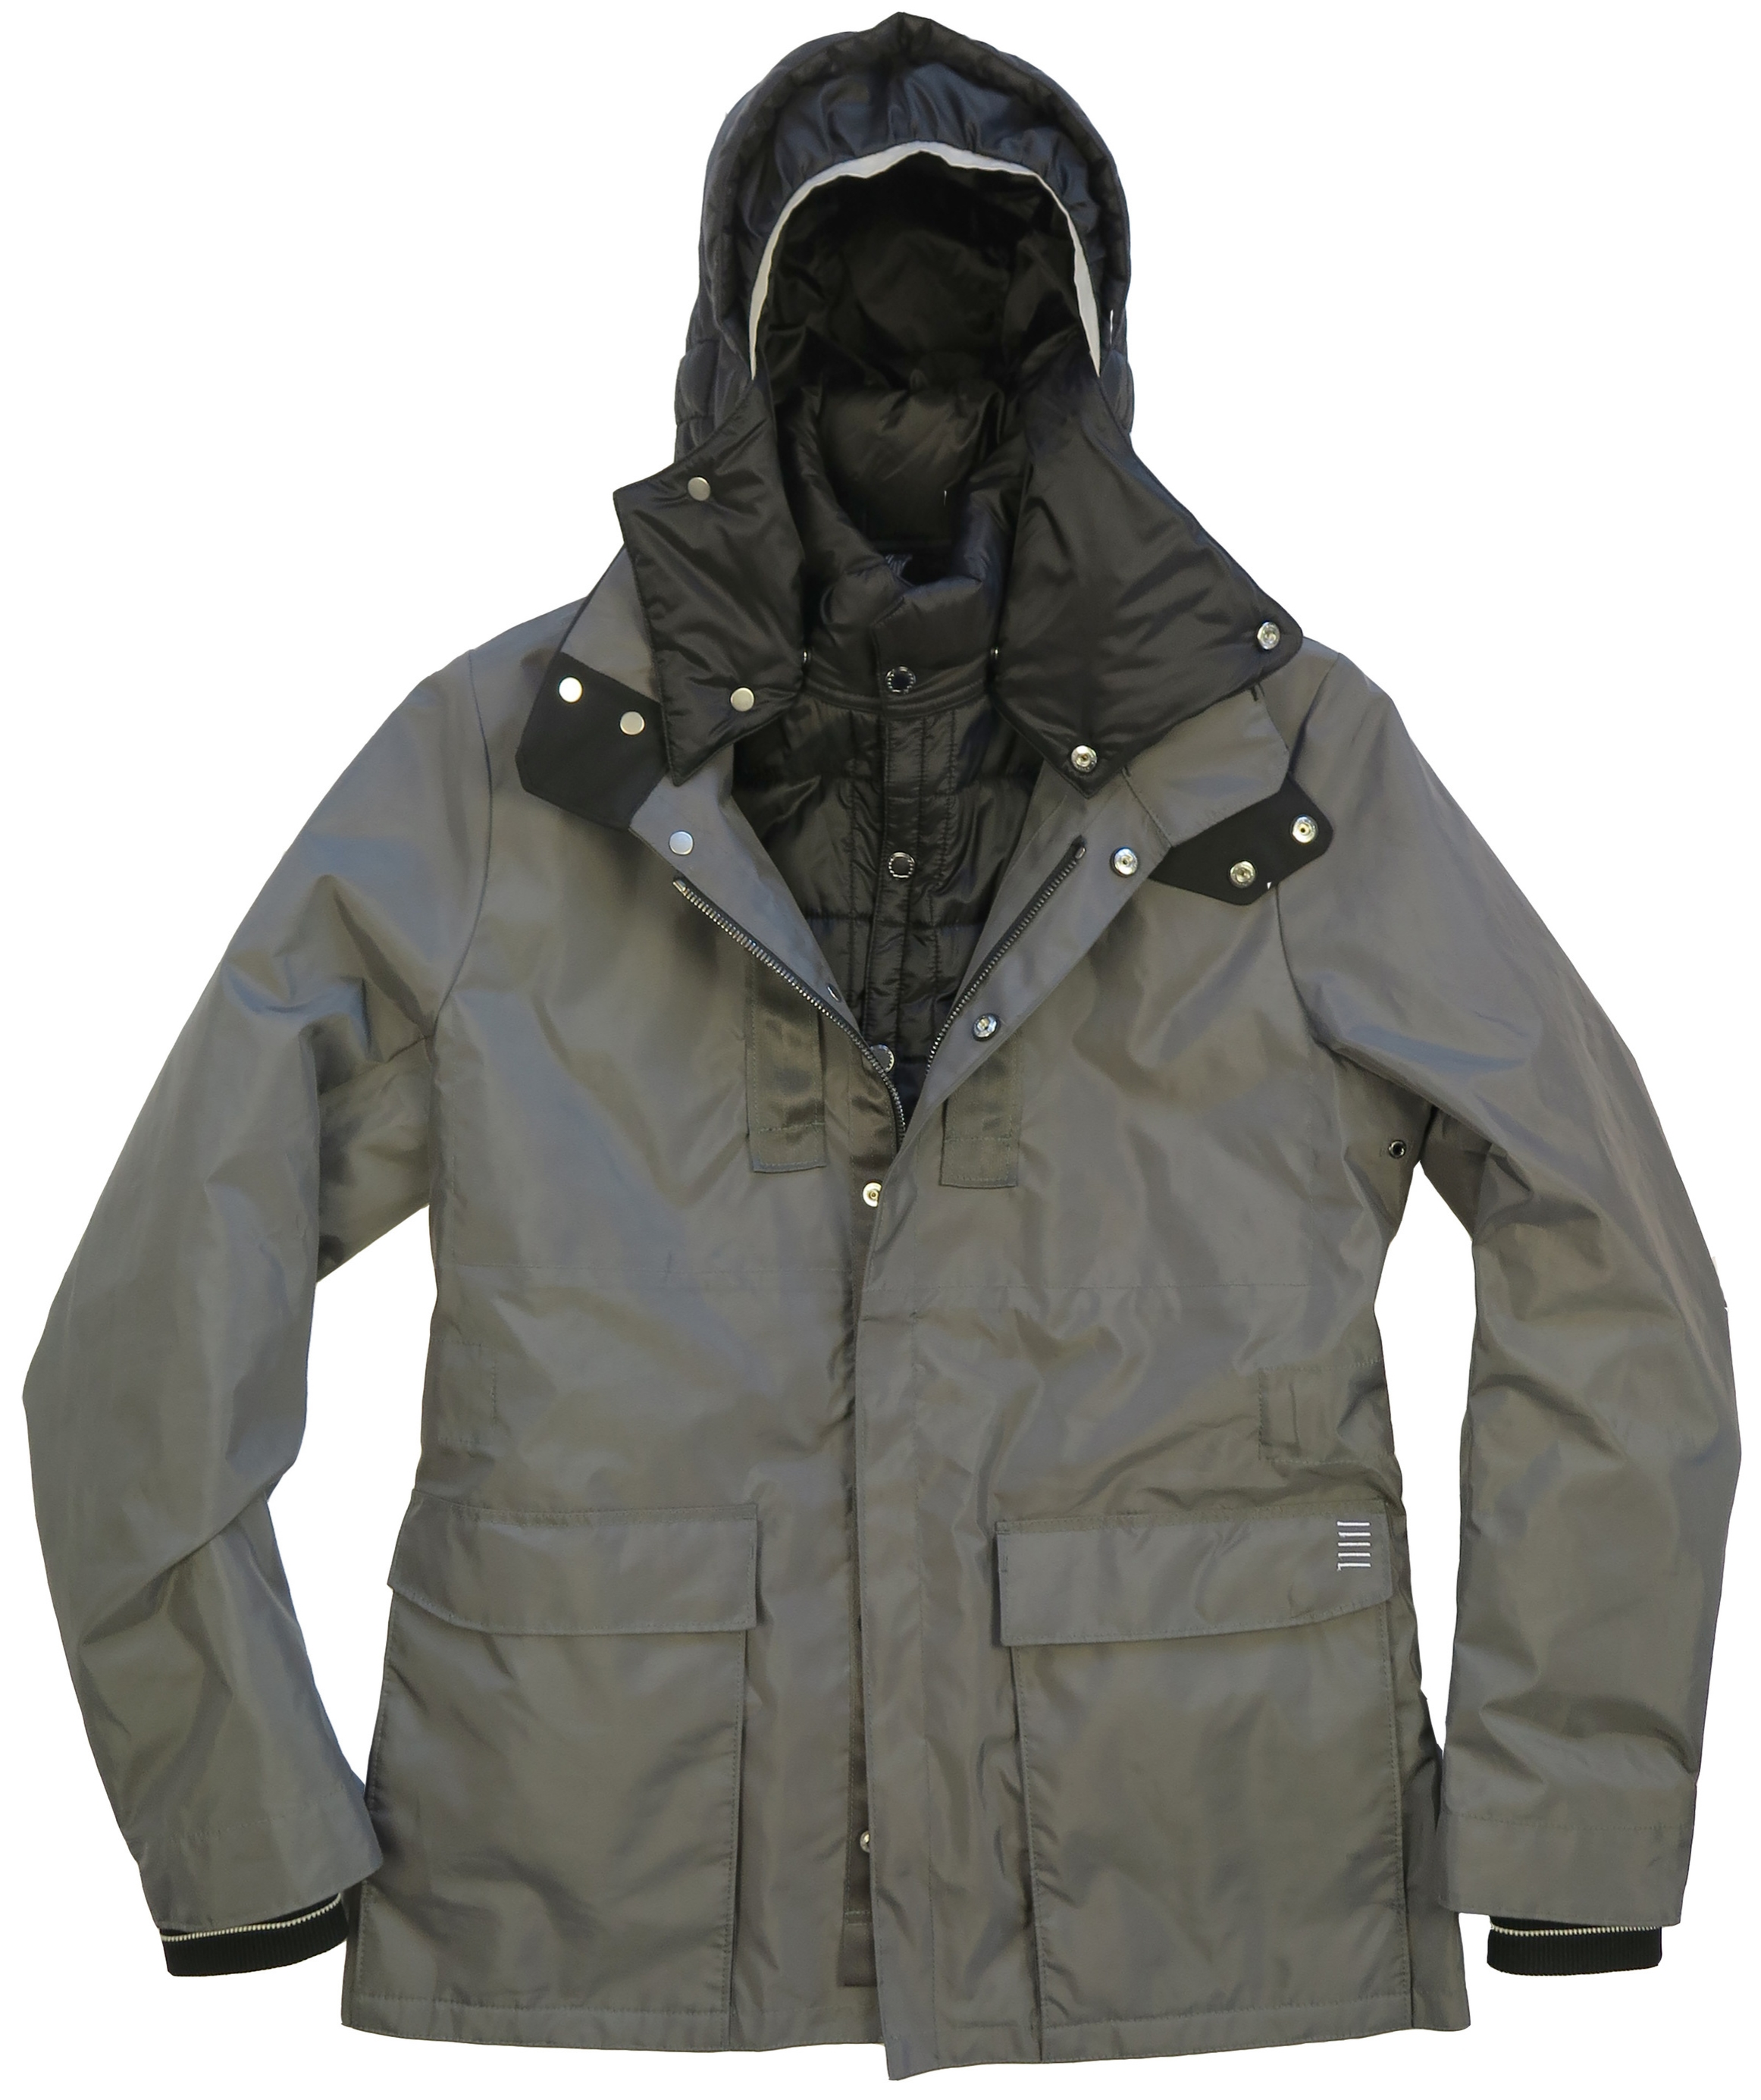 EFM Tribeca Field Jacket, $1,295